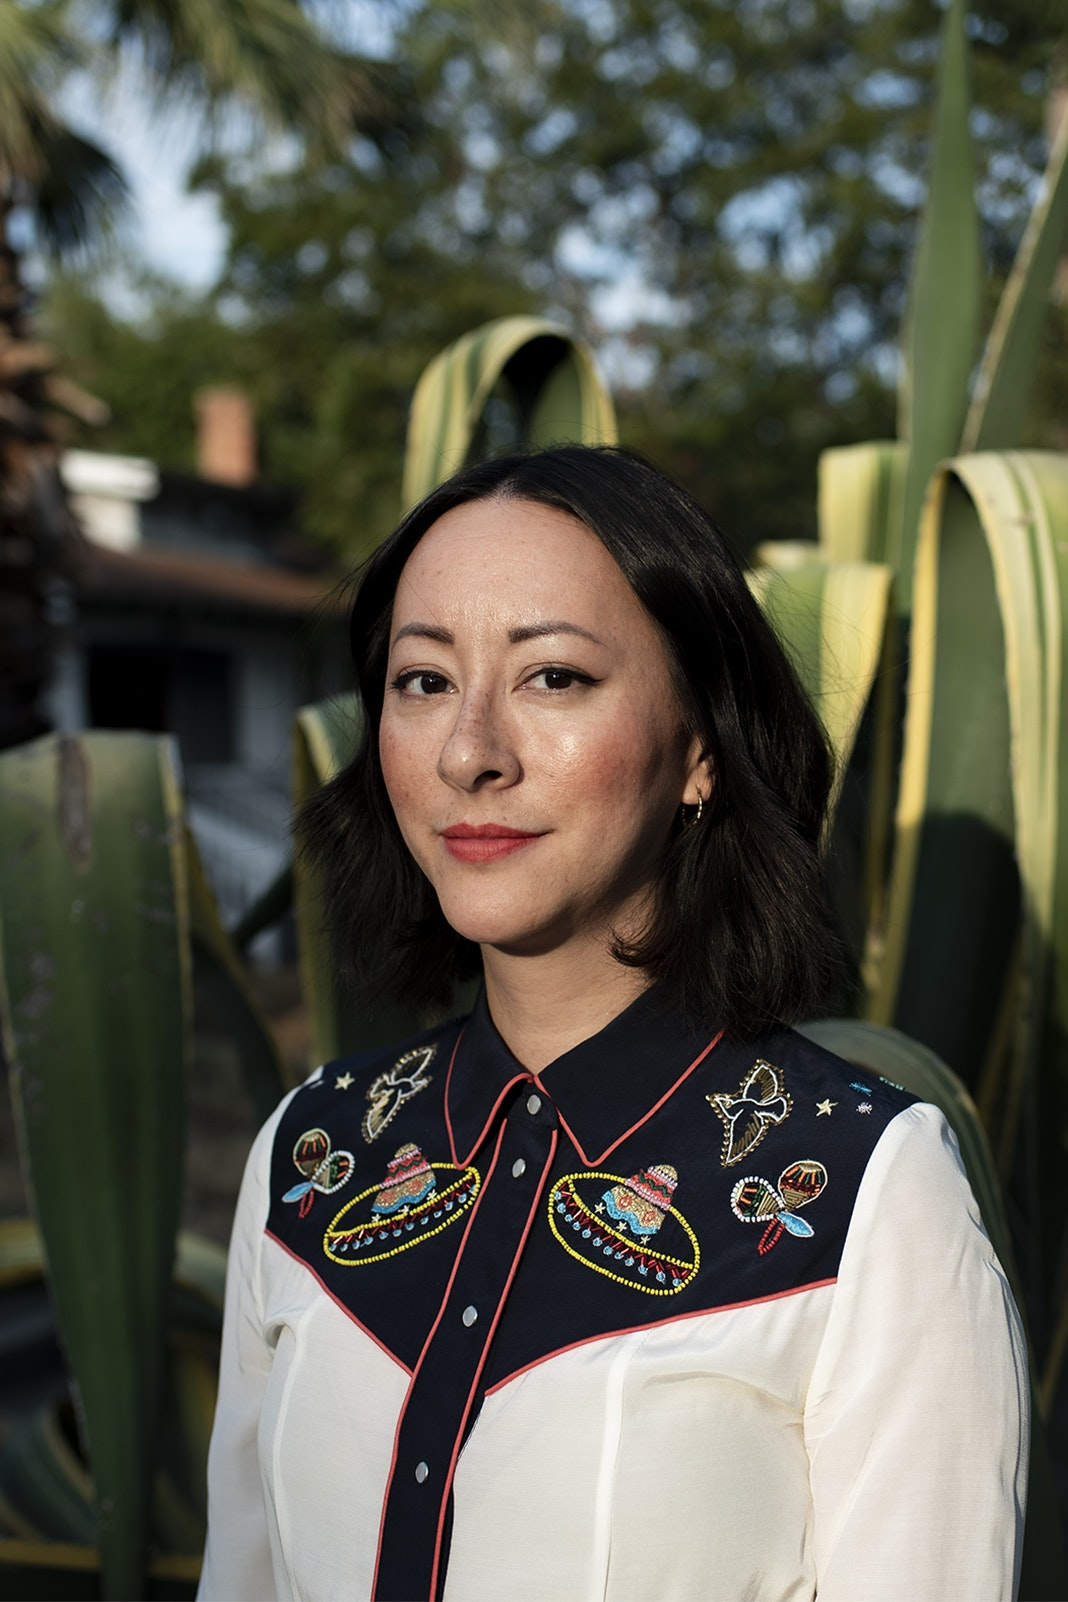 portrait of sun-illuminated person in a white and black embroidered western shirt posed infront of a large cactus in a yard with palm tree in background